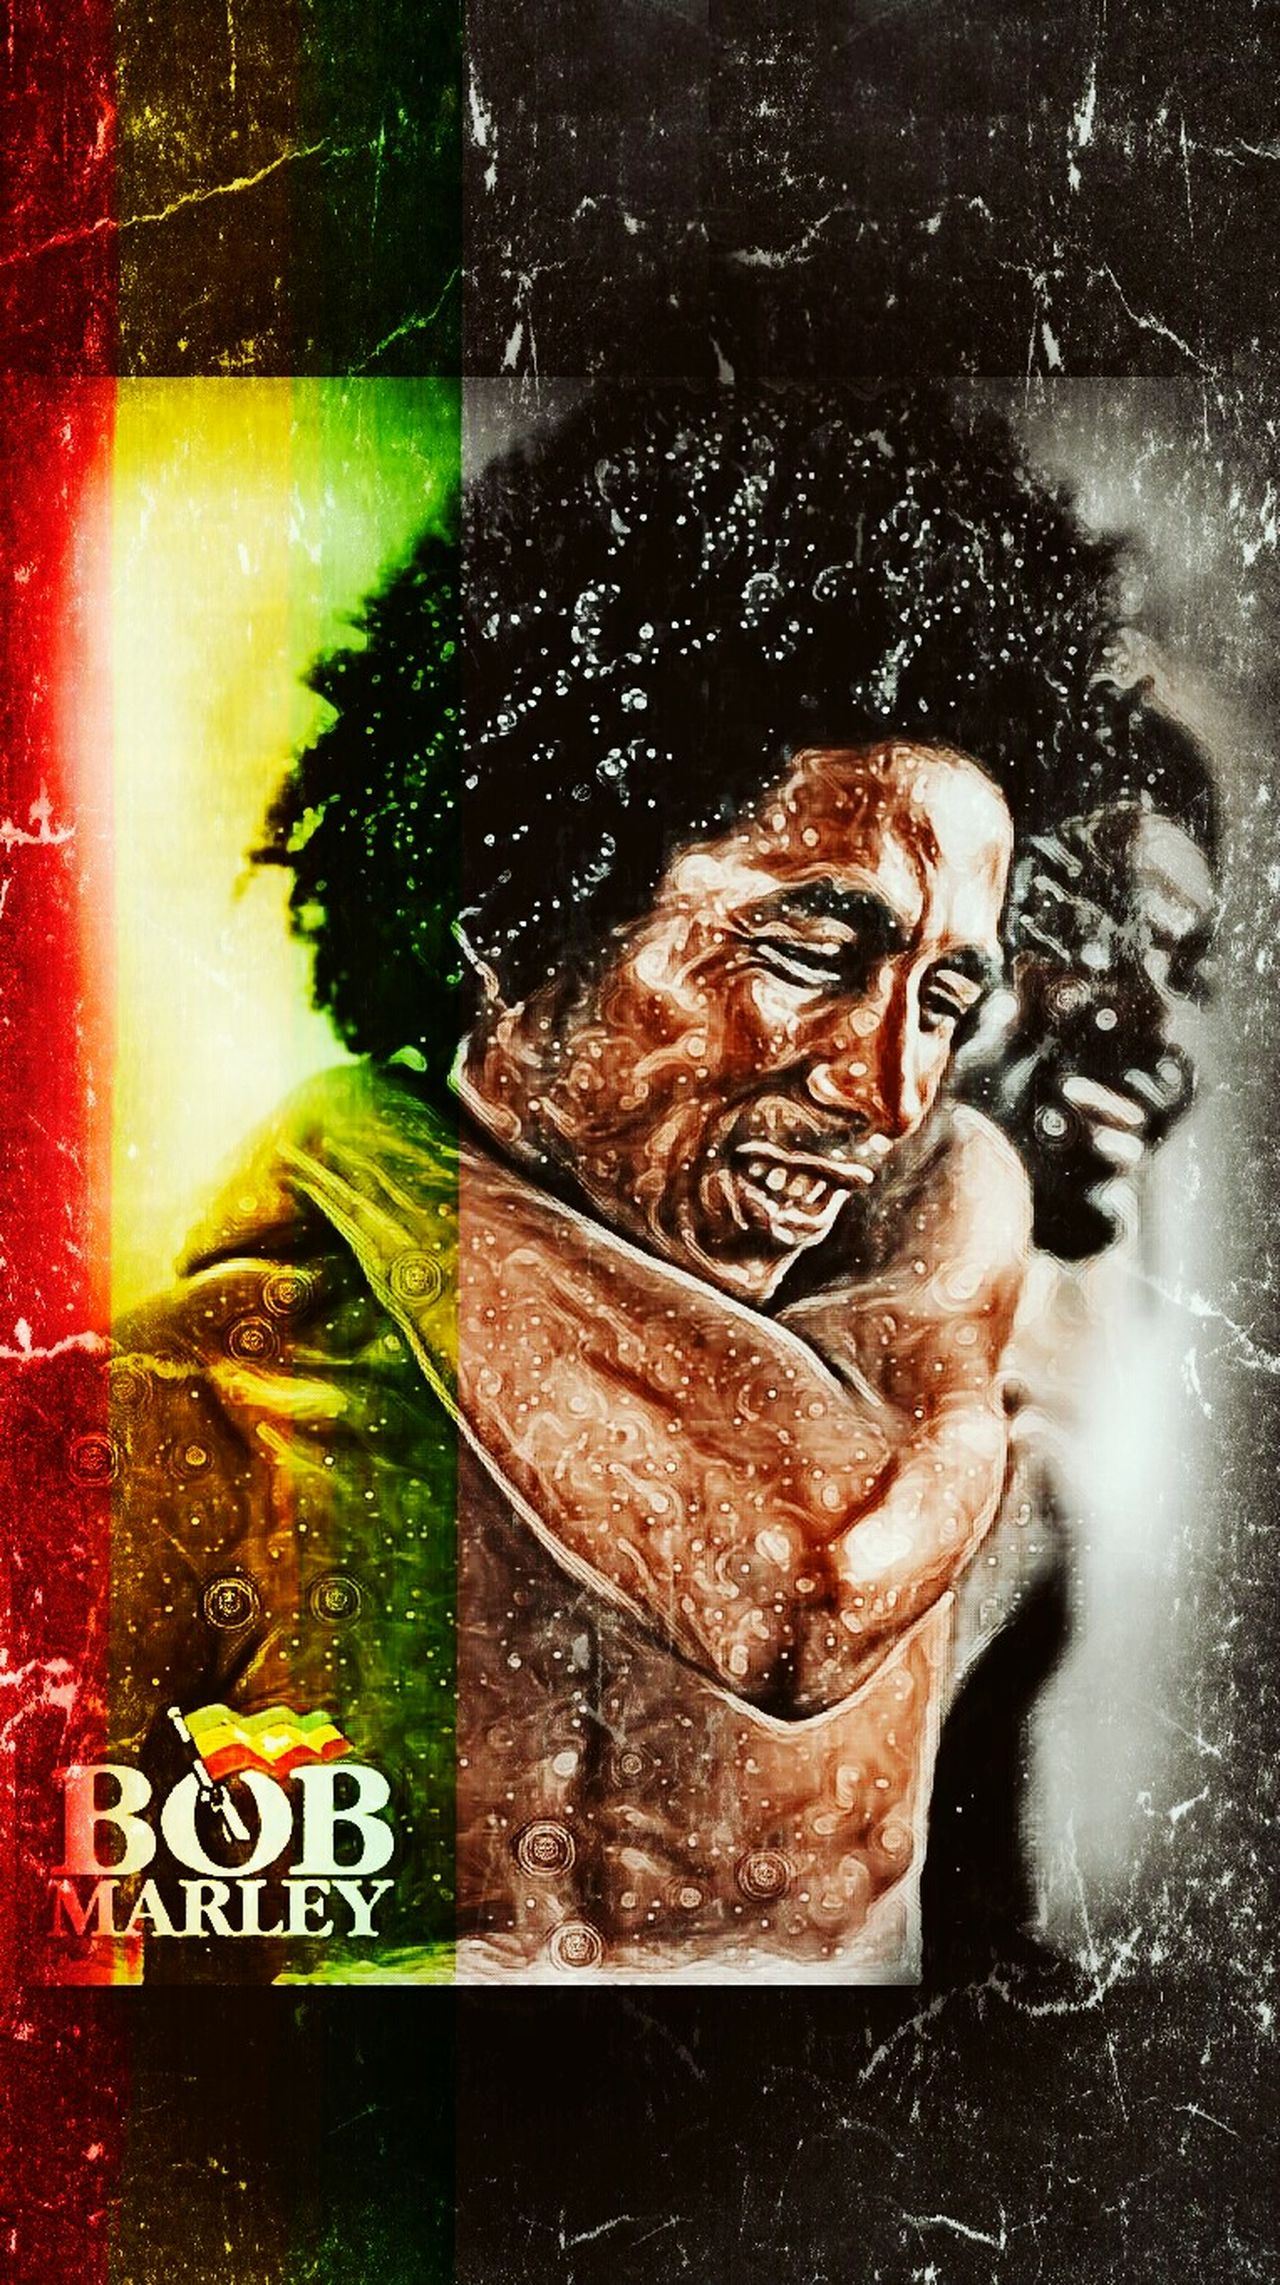 Mr. Marley. Bob Marley My Unique Style From My Point Of View One Love❤ Jamaican RastaRude Creativity RASTA Portrait Real People